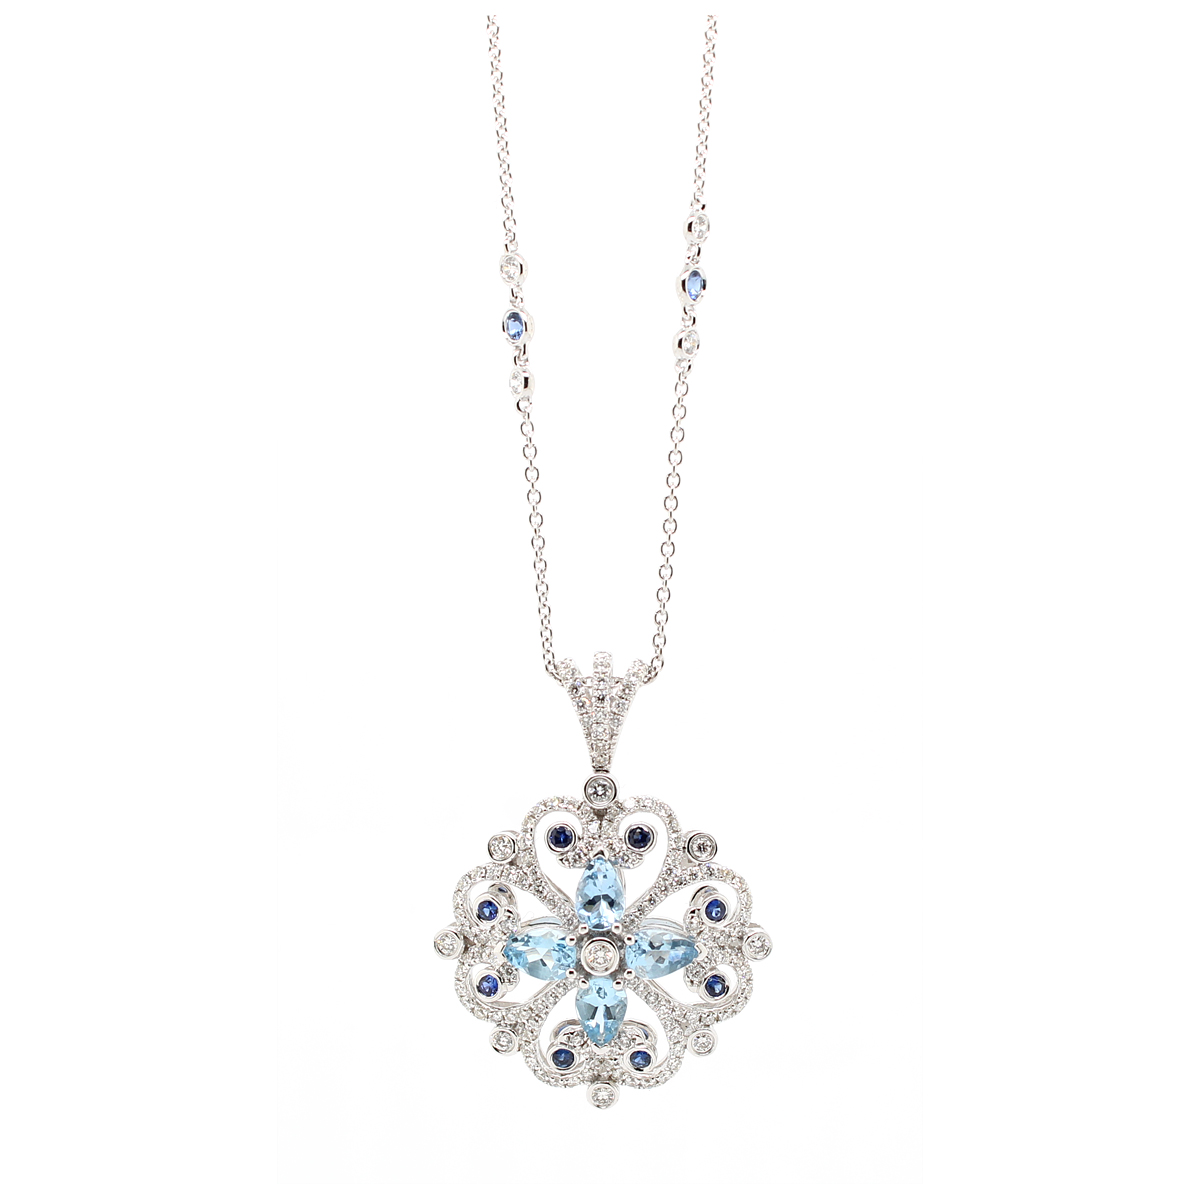 Charles Krypell 18 Karat White Gold Diamond, Aquamarine and Blue Sapphire Pendant Necklace